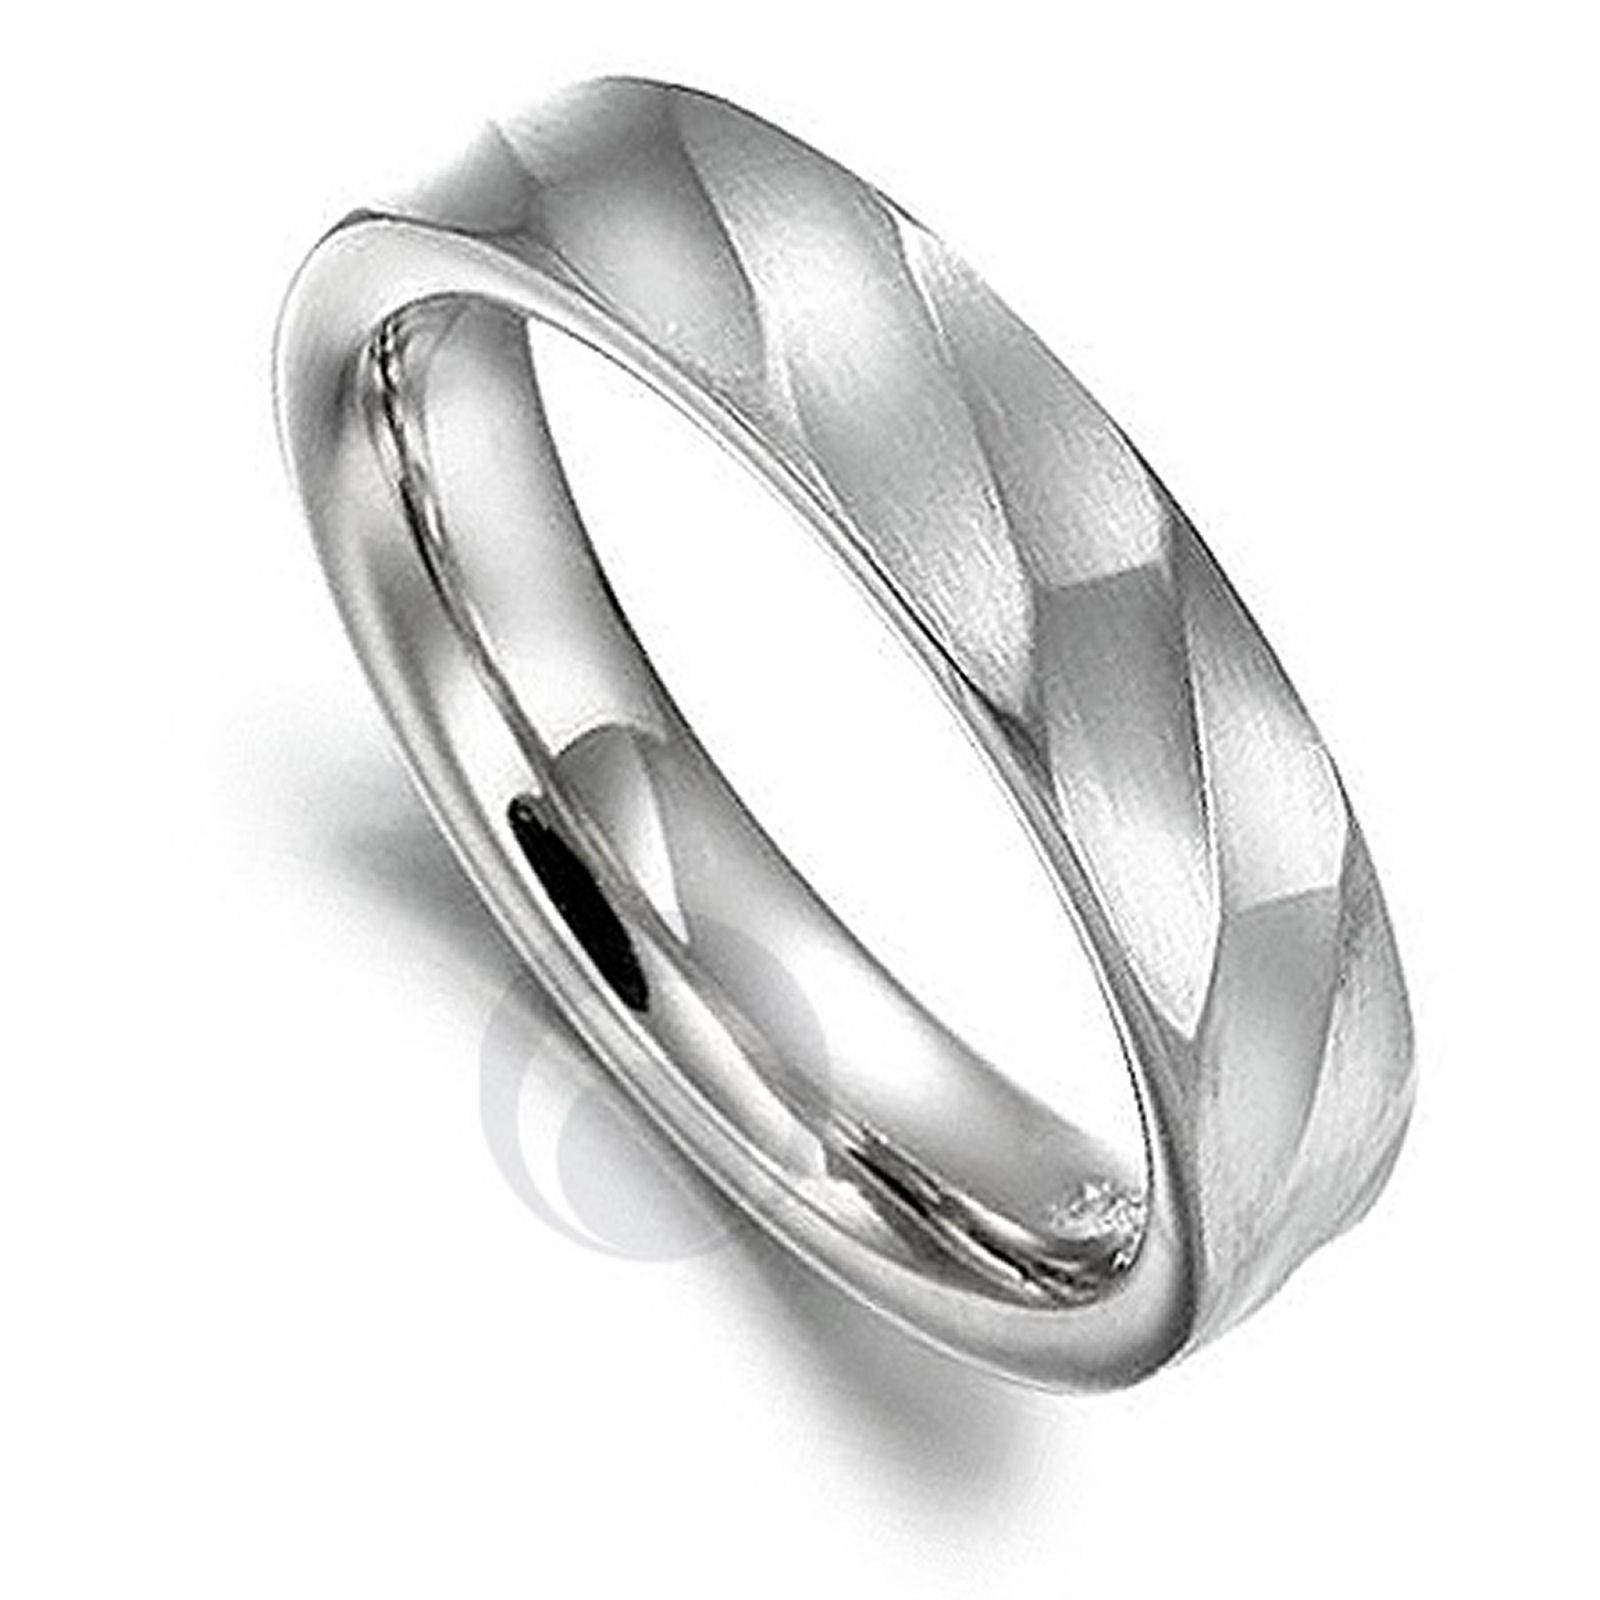 Mens Platinum Wedding Ring Wedding Dress From The Platinum Ring Pertaining To Most Popular Wedding Band Mens Platinum (View 4 of 15)